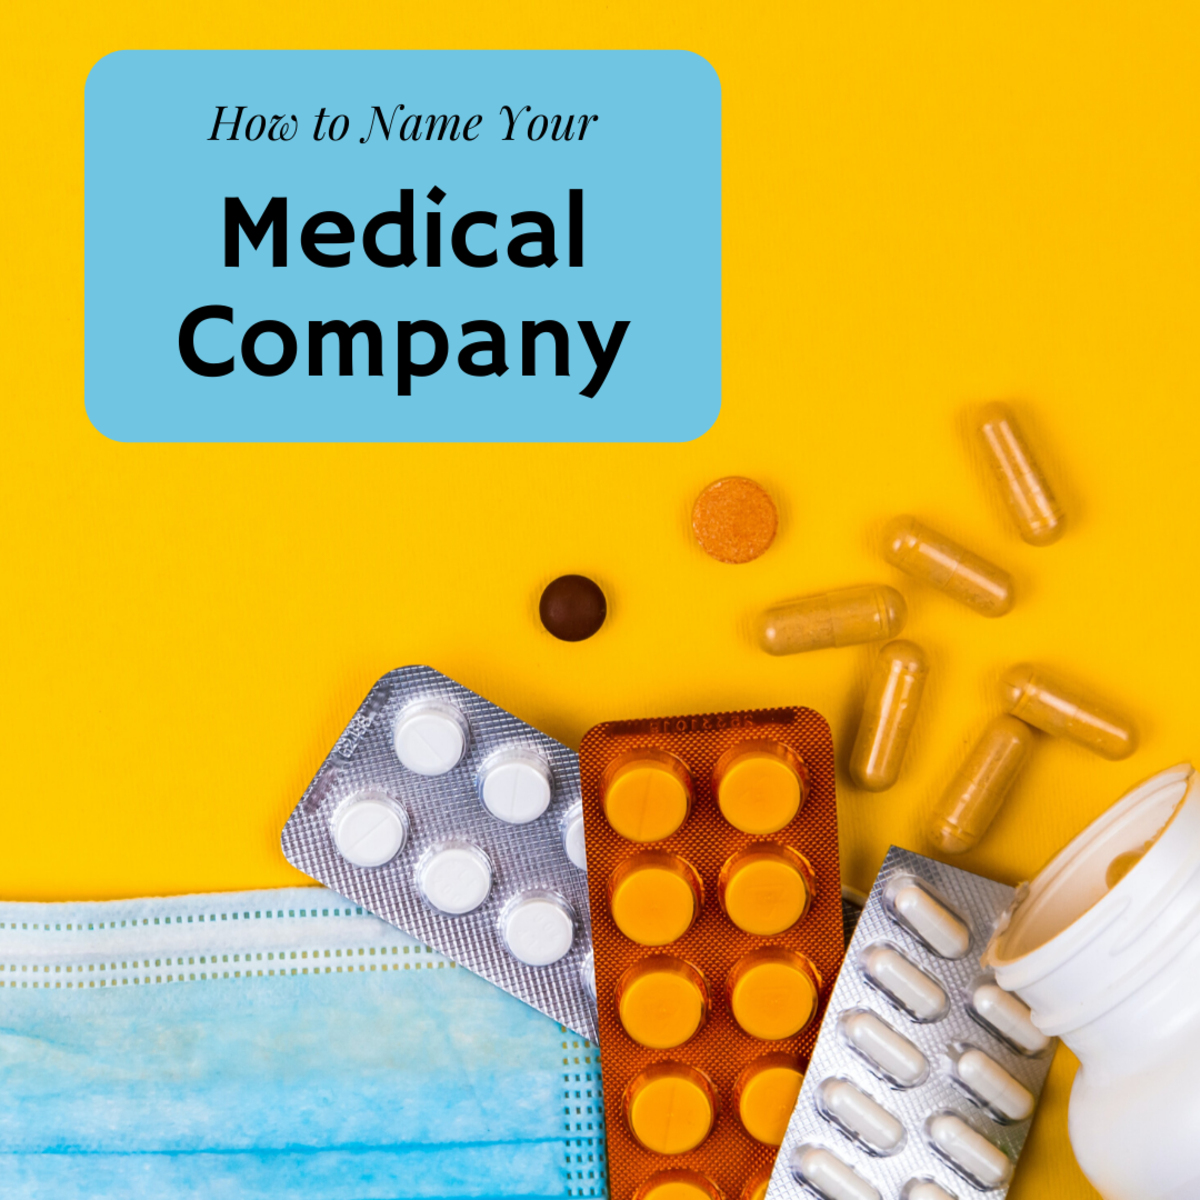 50 Great Medical Company Name Ideas